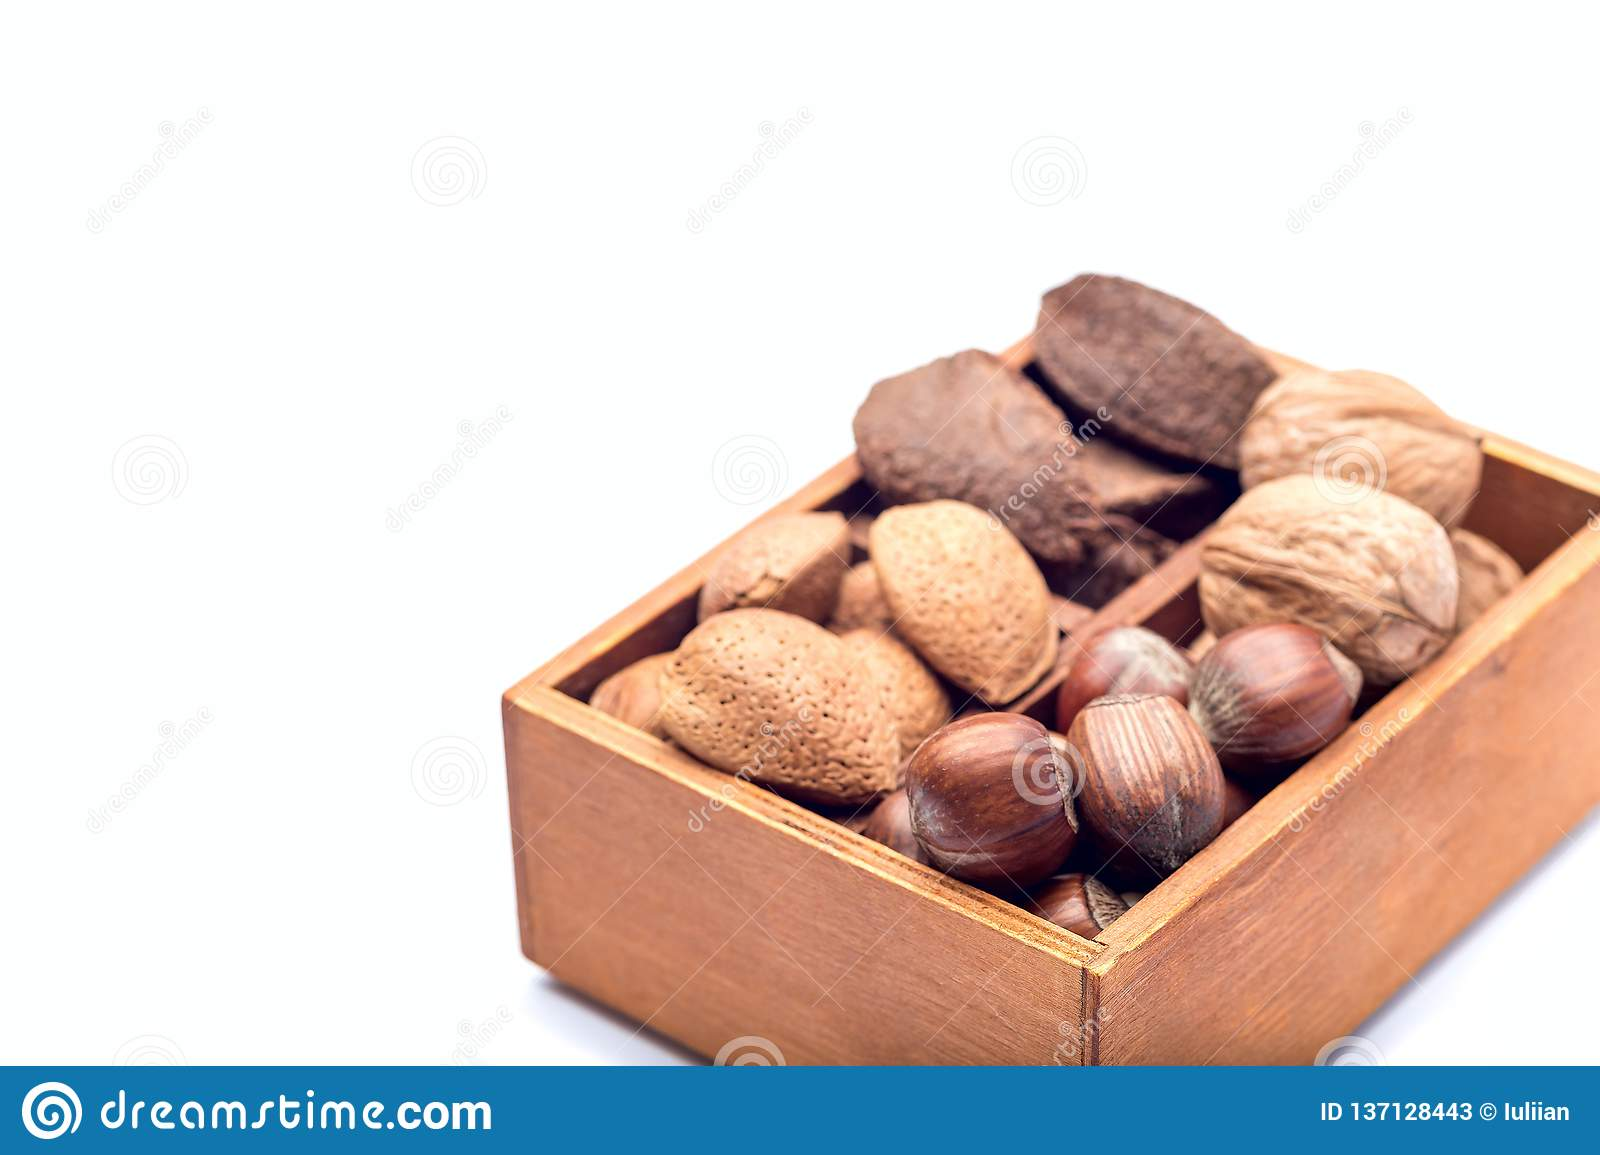 Different kinds of nuts in the shell: hazelnut, walnut, almond and brazil nuts in wooden box, isolated on a white background